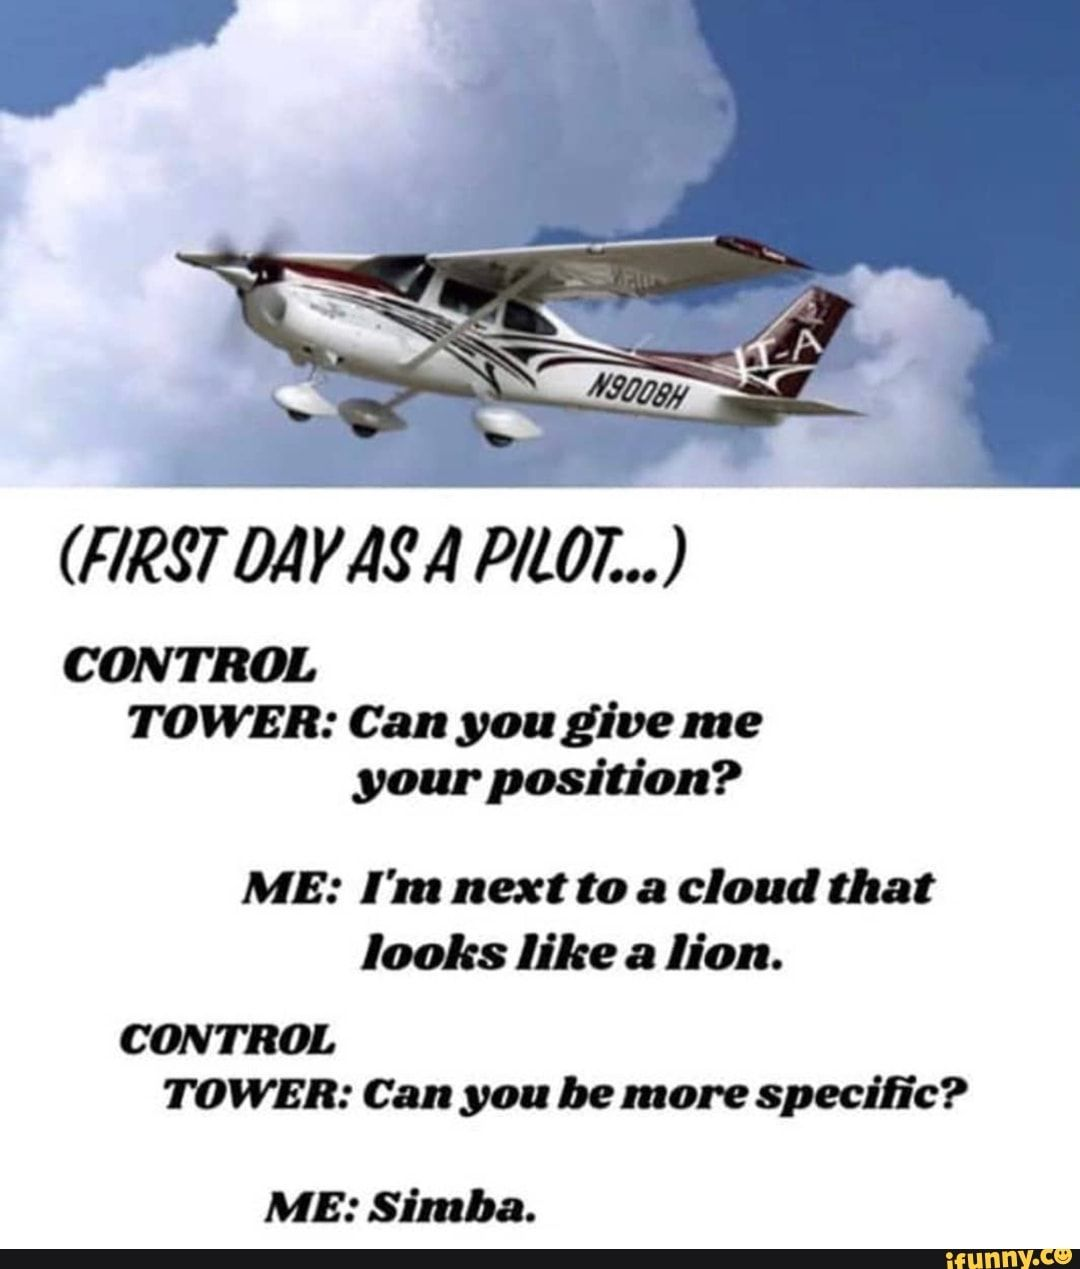 CONTROL TOWER: Can youg'ive me yourposidon? ME: I'm next to a cloud that looks like lion. CONTROL TOWER: Can you be more specific? ME: Simba. – popular memes on the site iFunny.co #disneyanimated #movies #airplane #cessna #justpilotthings #part91operator #flying #boeing #airbus #atc #atcmemes #control #can #yougive #im #cloud #looks #lion #more #simba #pic